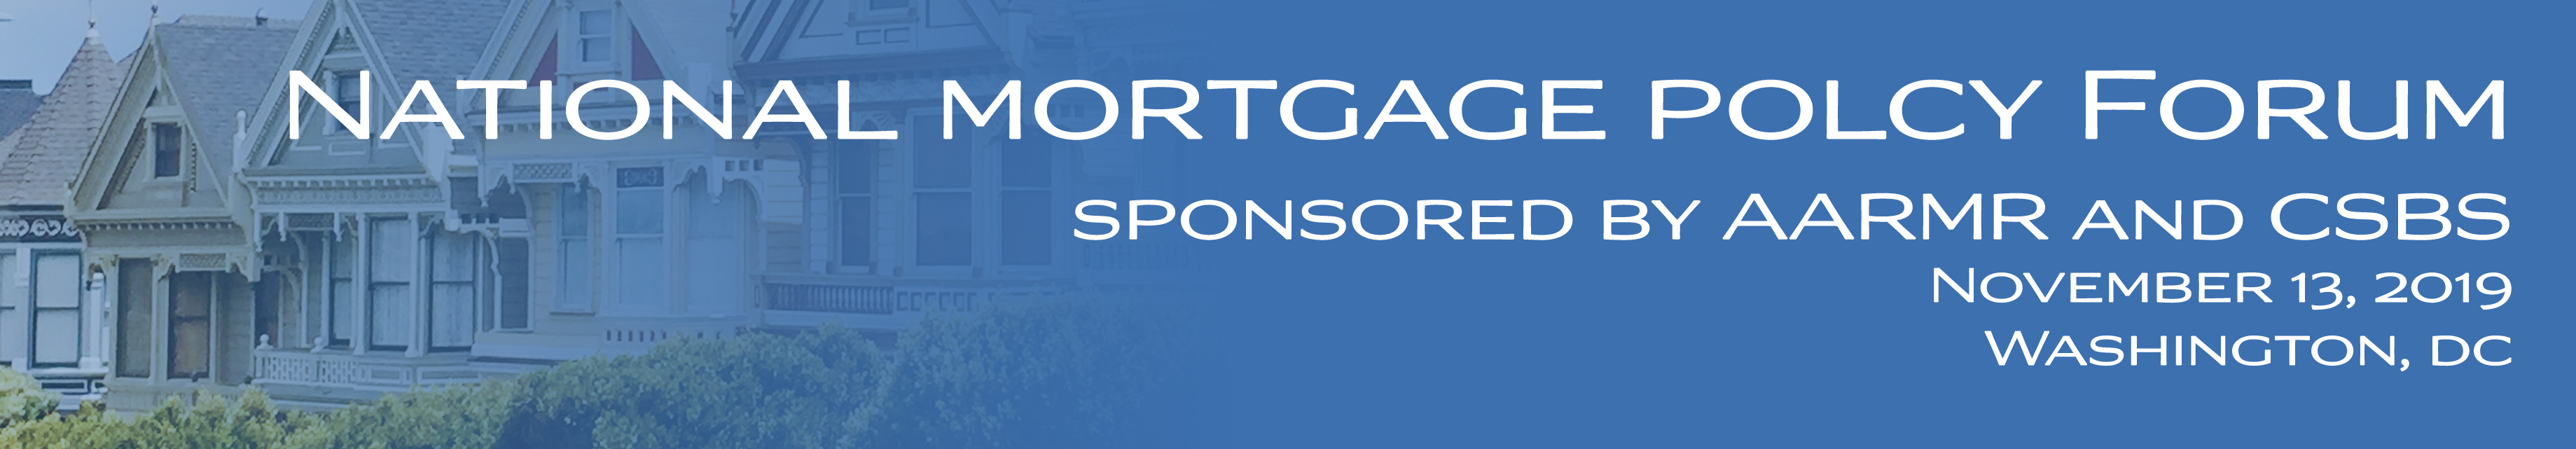 National Mortgage Policy Forum